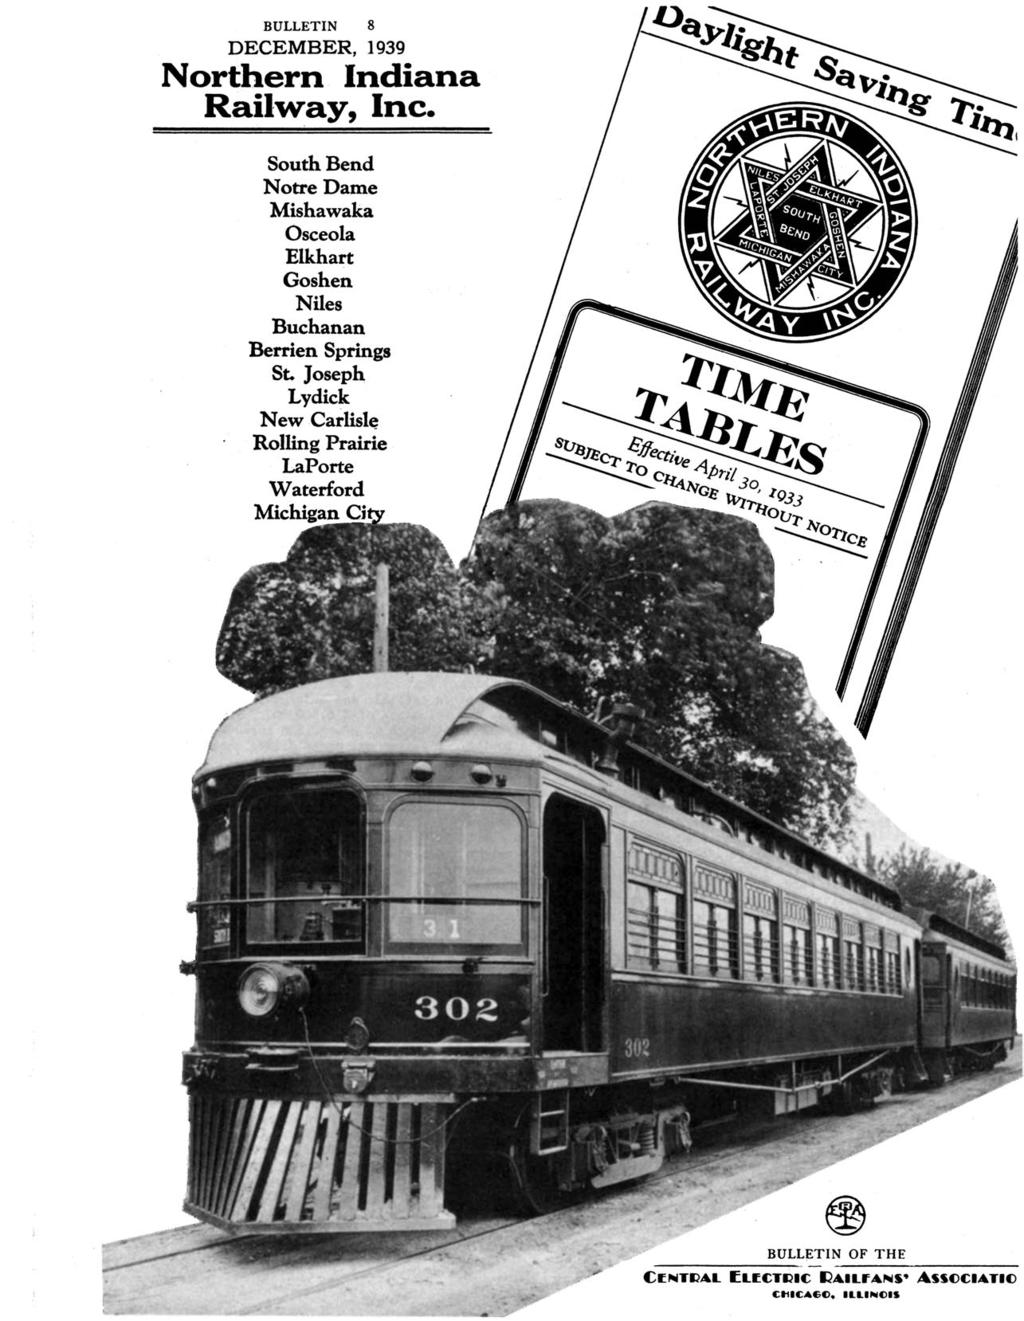 BULLETIN 8 DECEMBER, 1939 Northern Indiana Railway, Inc. South Bend Notre Dame Mishawaka Osceola Elkhart Goshen Niles Buchanan Berrien Springs St. Joseph Lydick New.